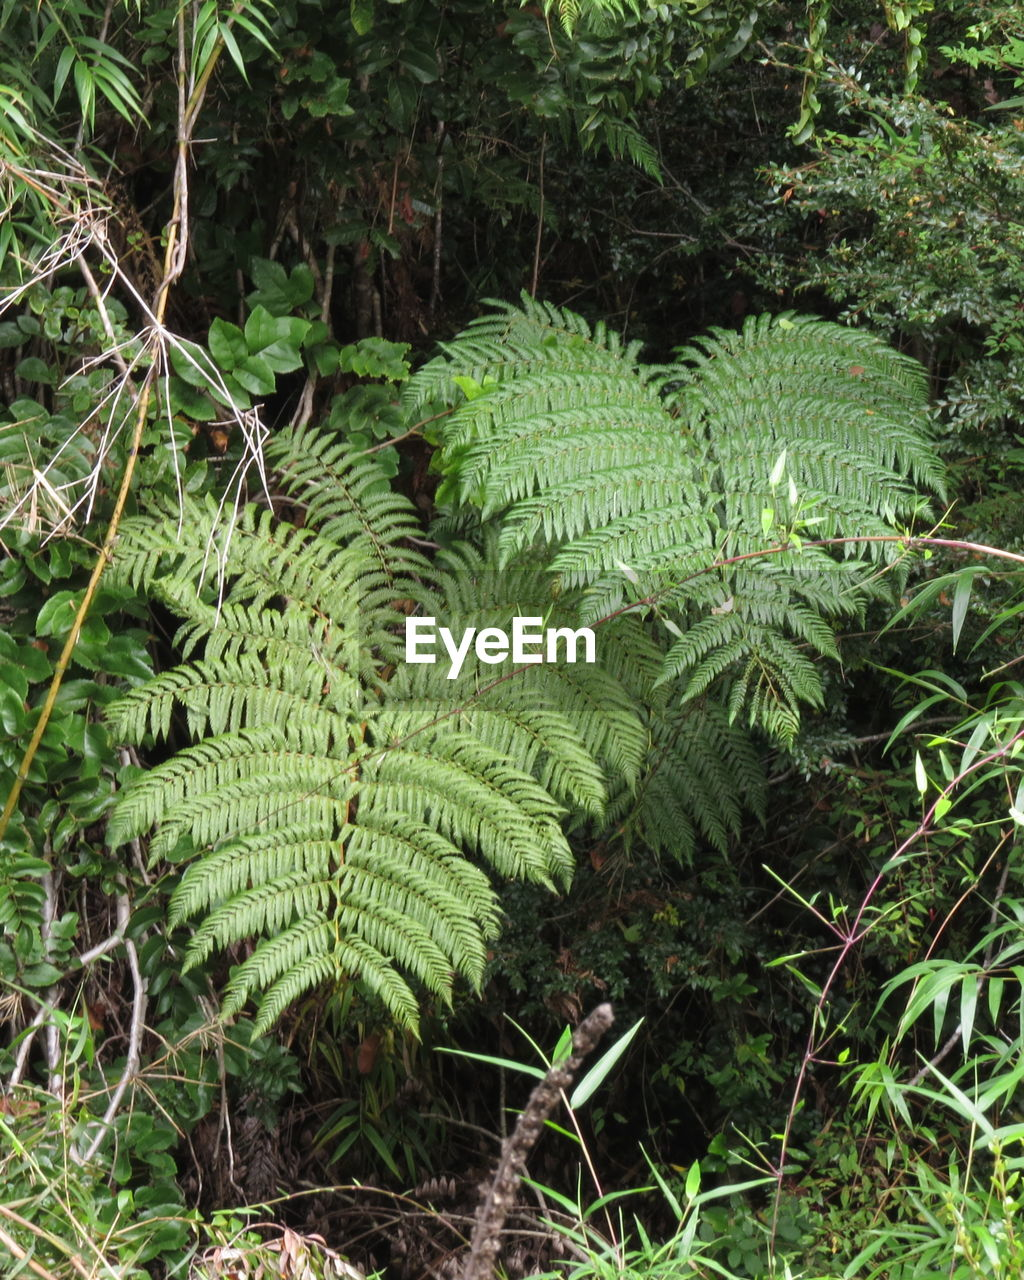 nature, growth, plant, green, fern, day, beauty in nature, green color, forest, no people, leaf, outdoors, close-up, freshness